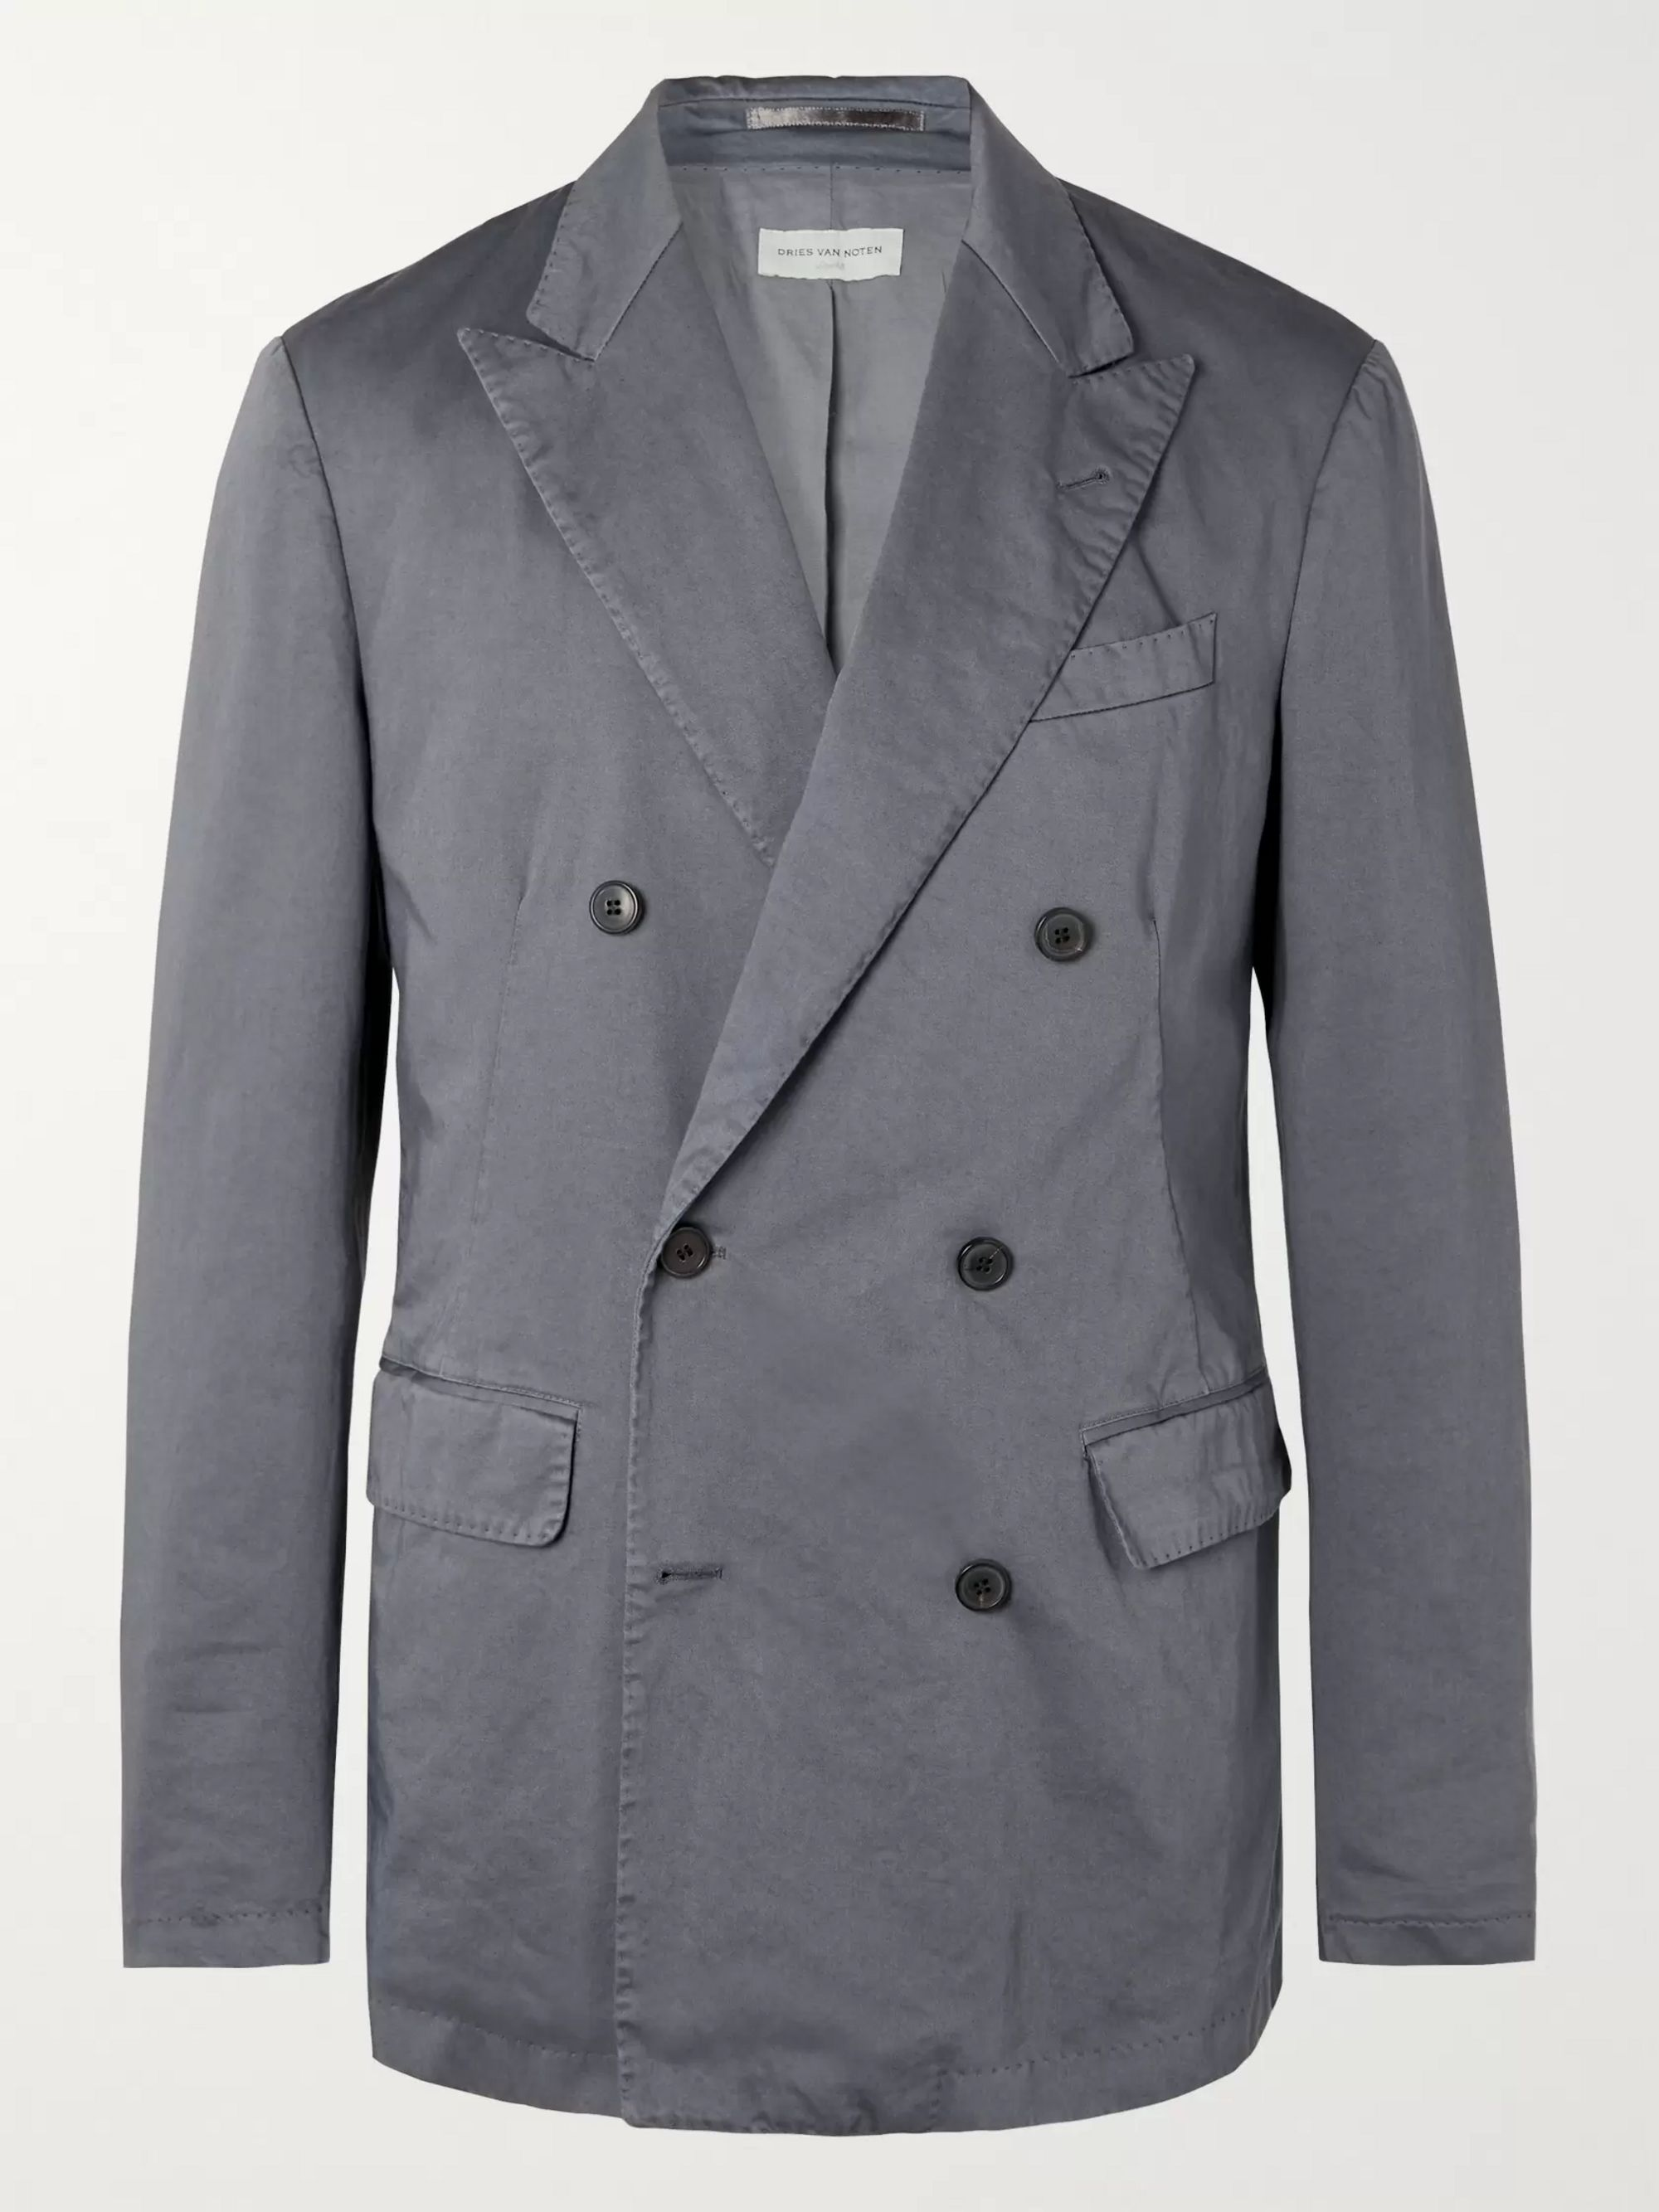 Dries Van Noten Grey Slim-Fit Double-Breasted Garment-Dyed Cotton Blazer